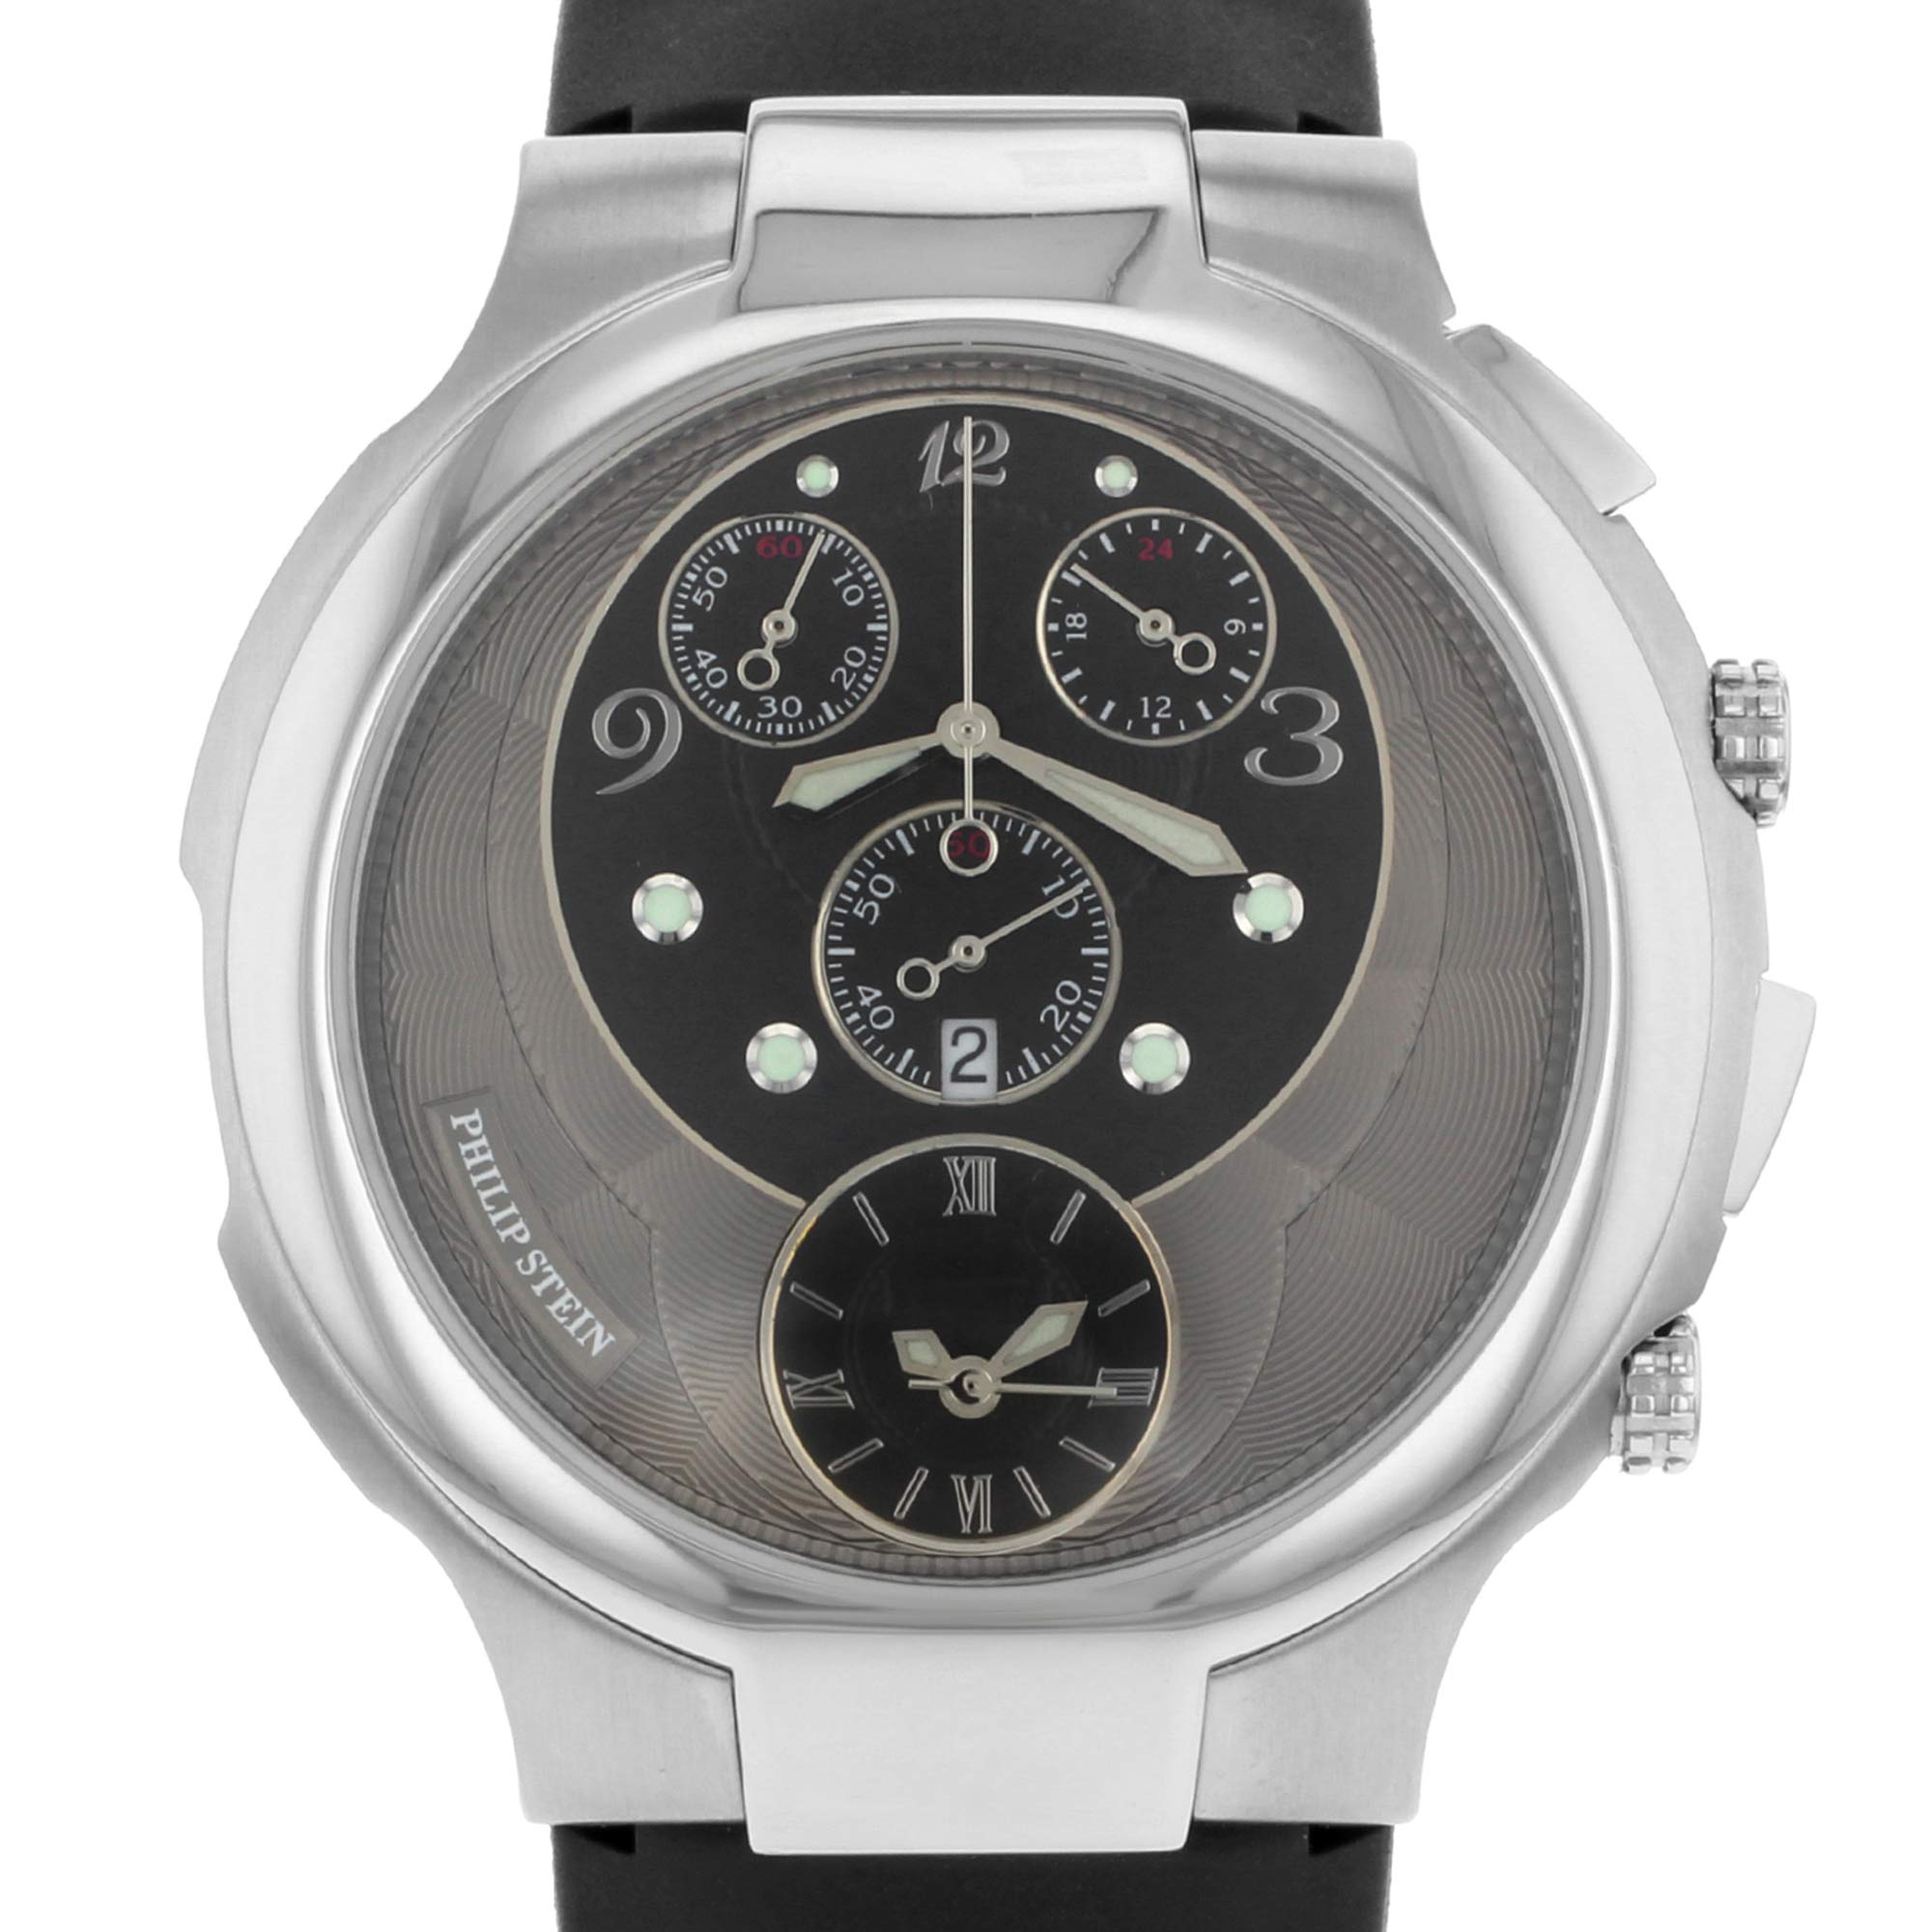 Philip Stein Chrono Analog-Quartz Male Watch 9-CRB3-CB (Certified Pre-Owned) by Philip Stein (Image #2)